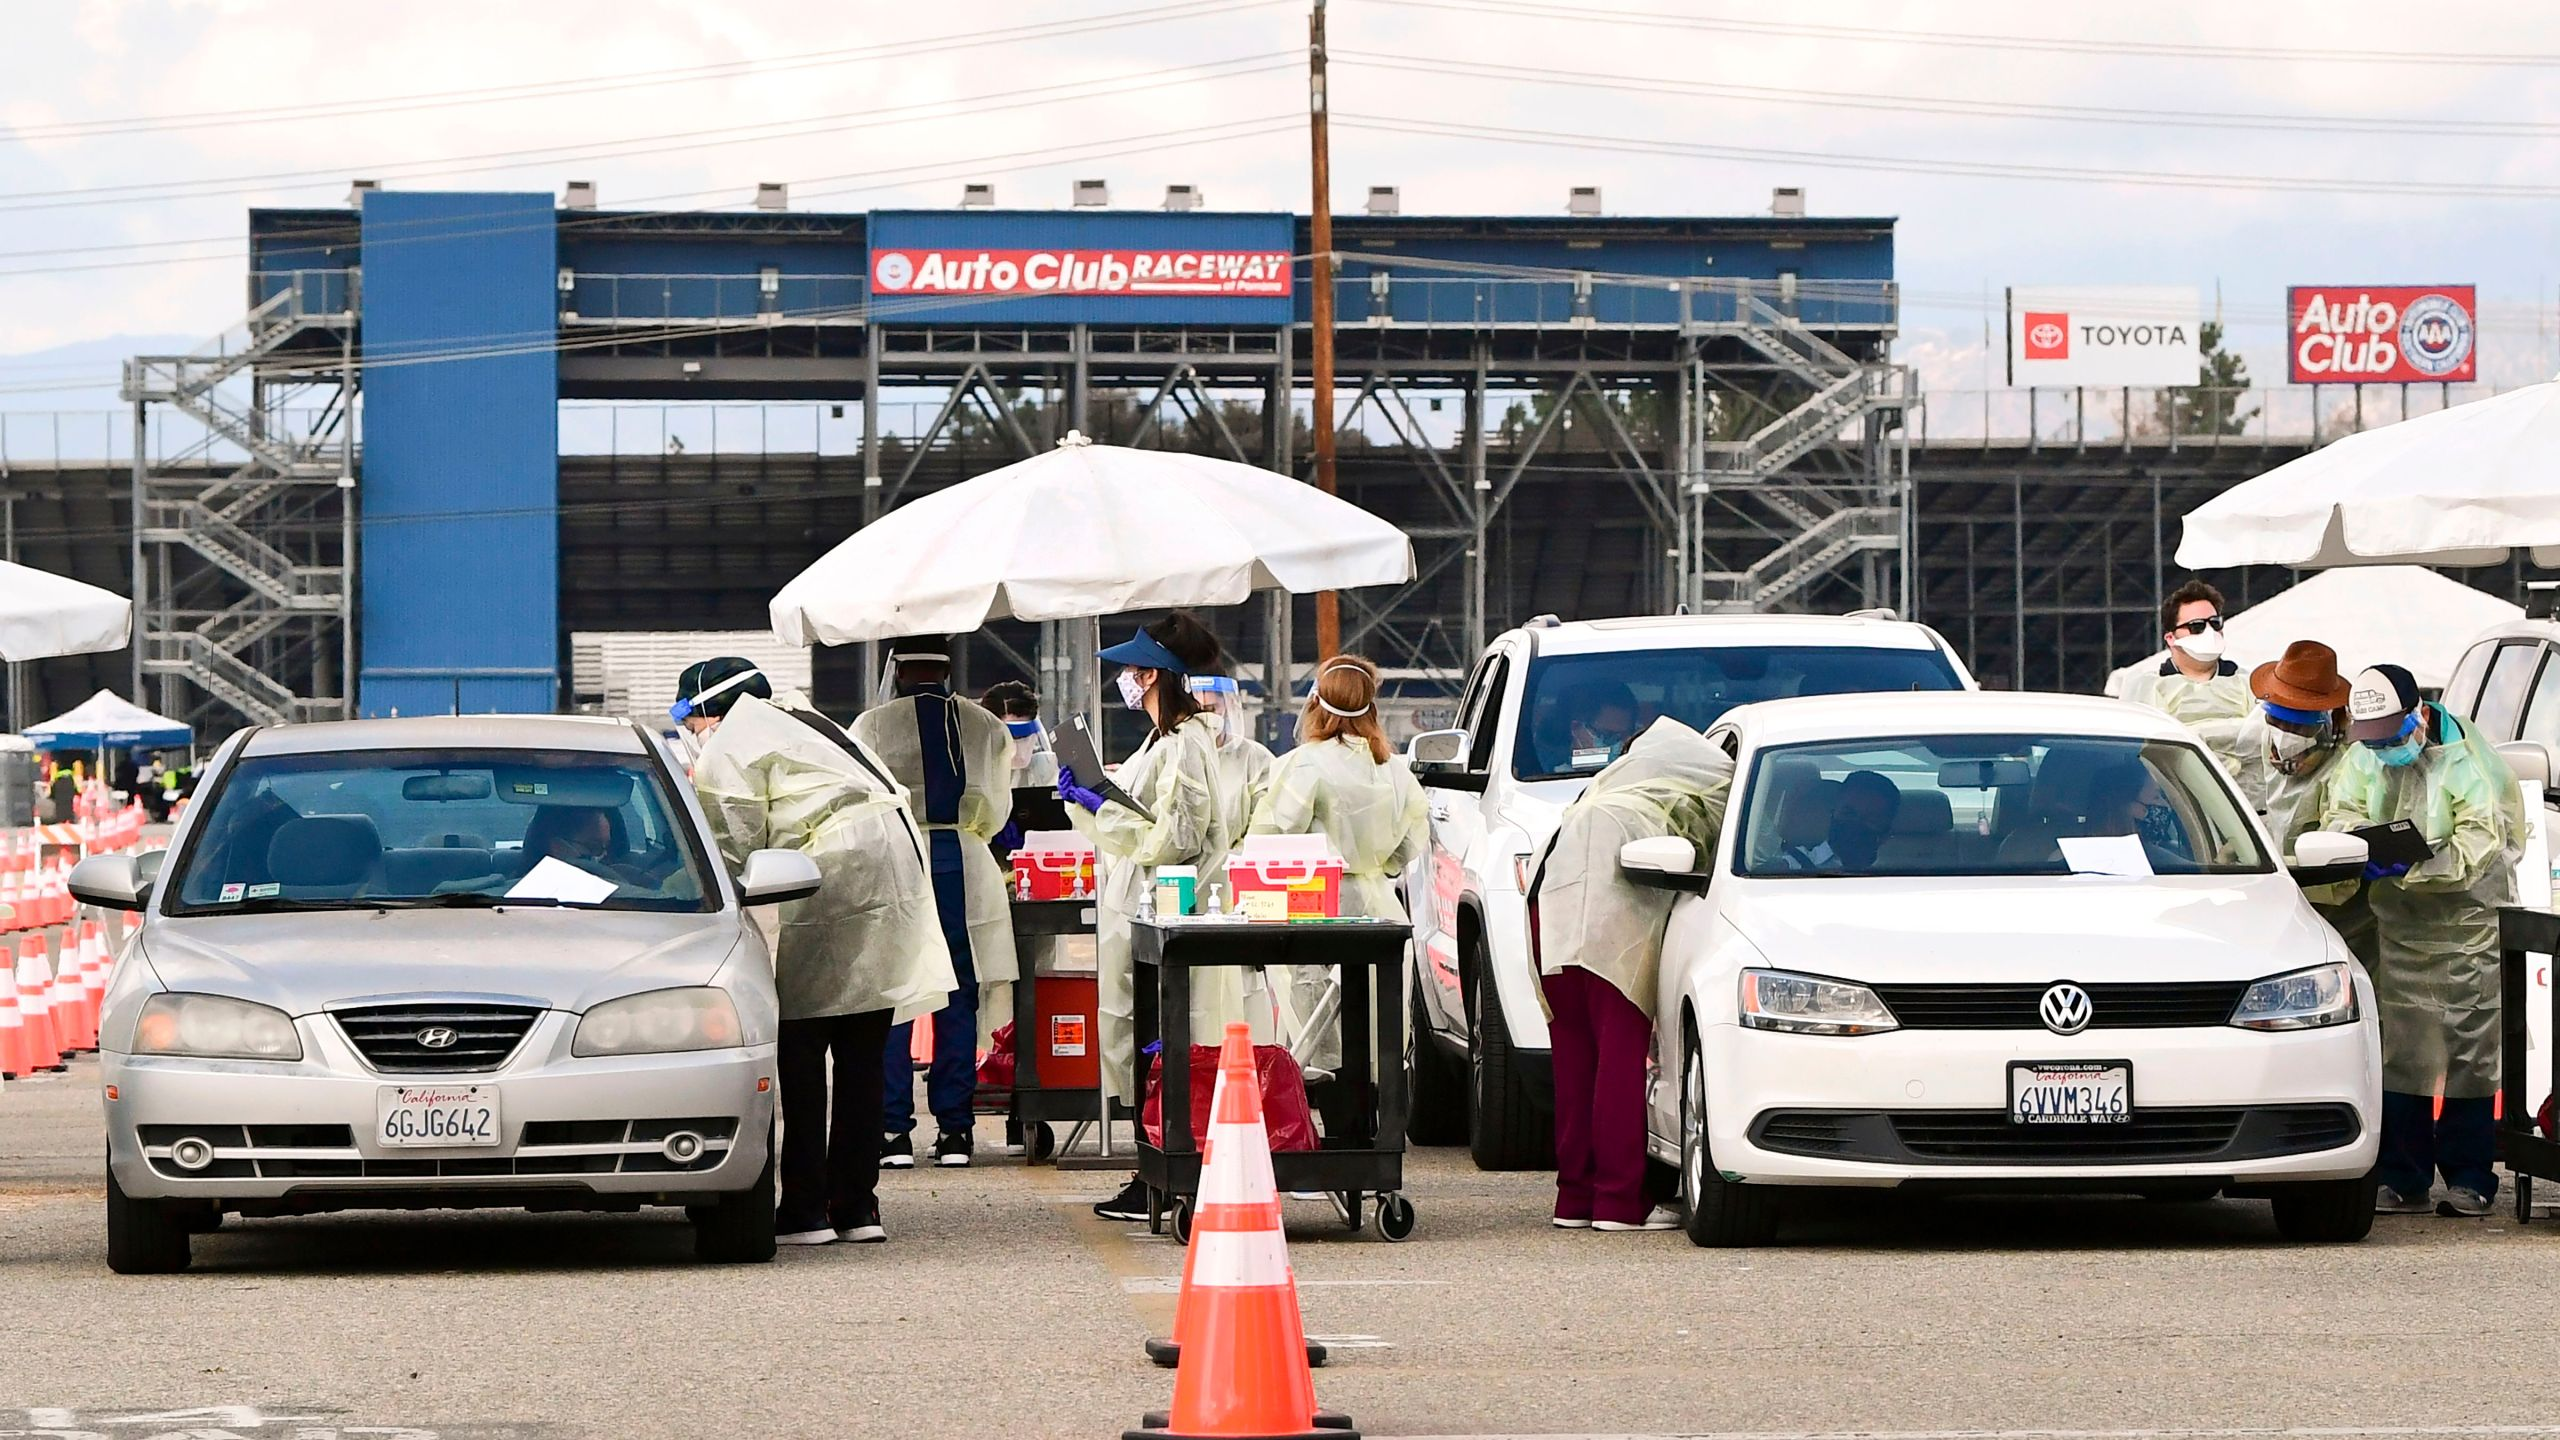 Health care personel dressed in personal protective gear help inoculate people arriving to receive COVID-19 vaccines at the Fairplex in Pomona on Jan. 22, 2021. (Frederic J. Brown / AFP / Getty Images)